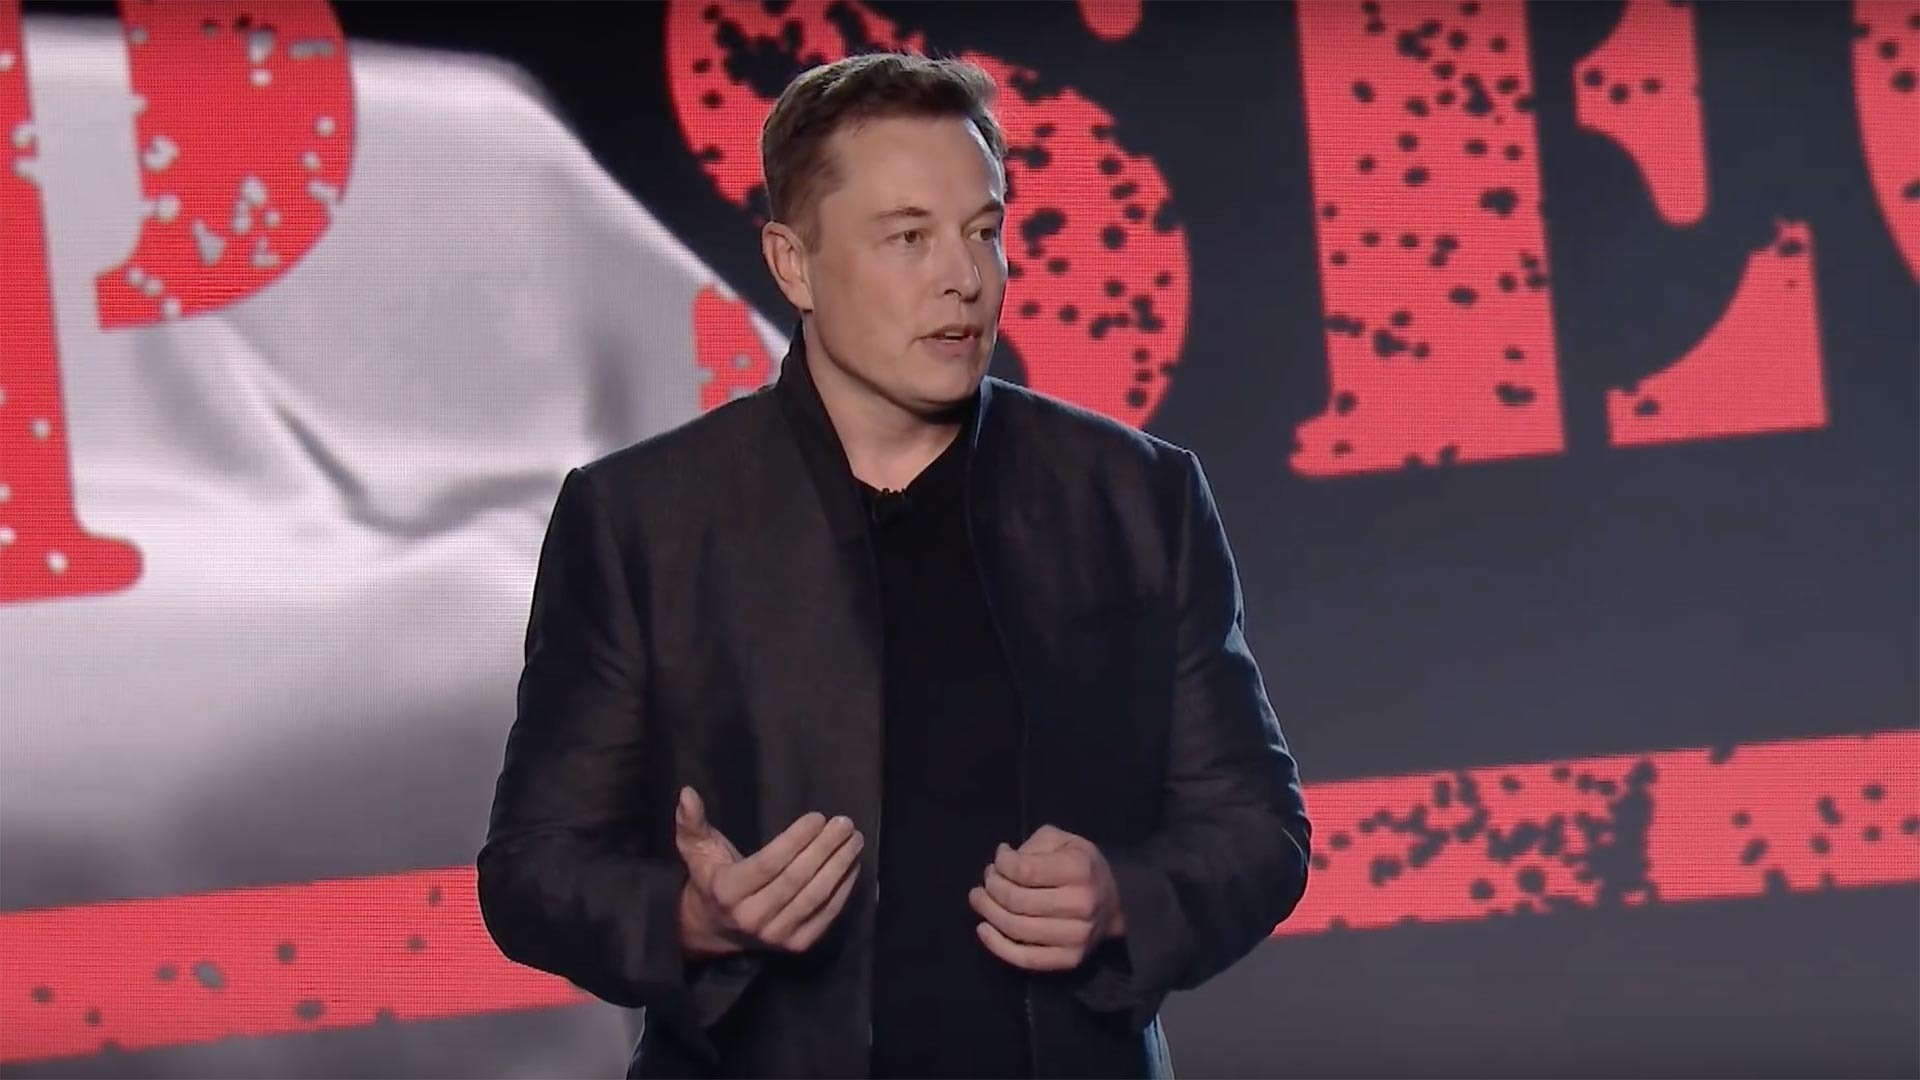 Elon Musk says human driving will eventually be banned